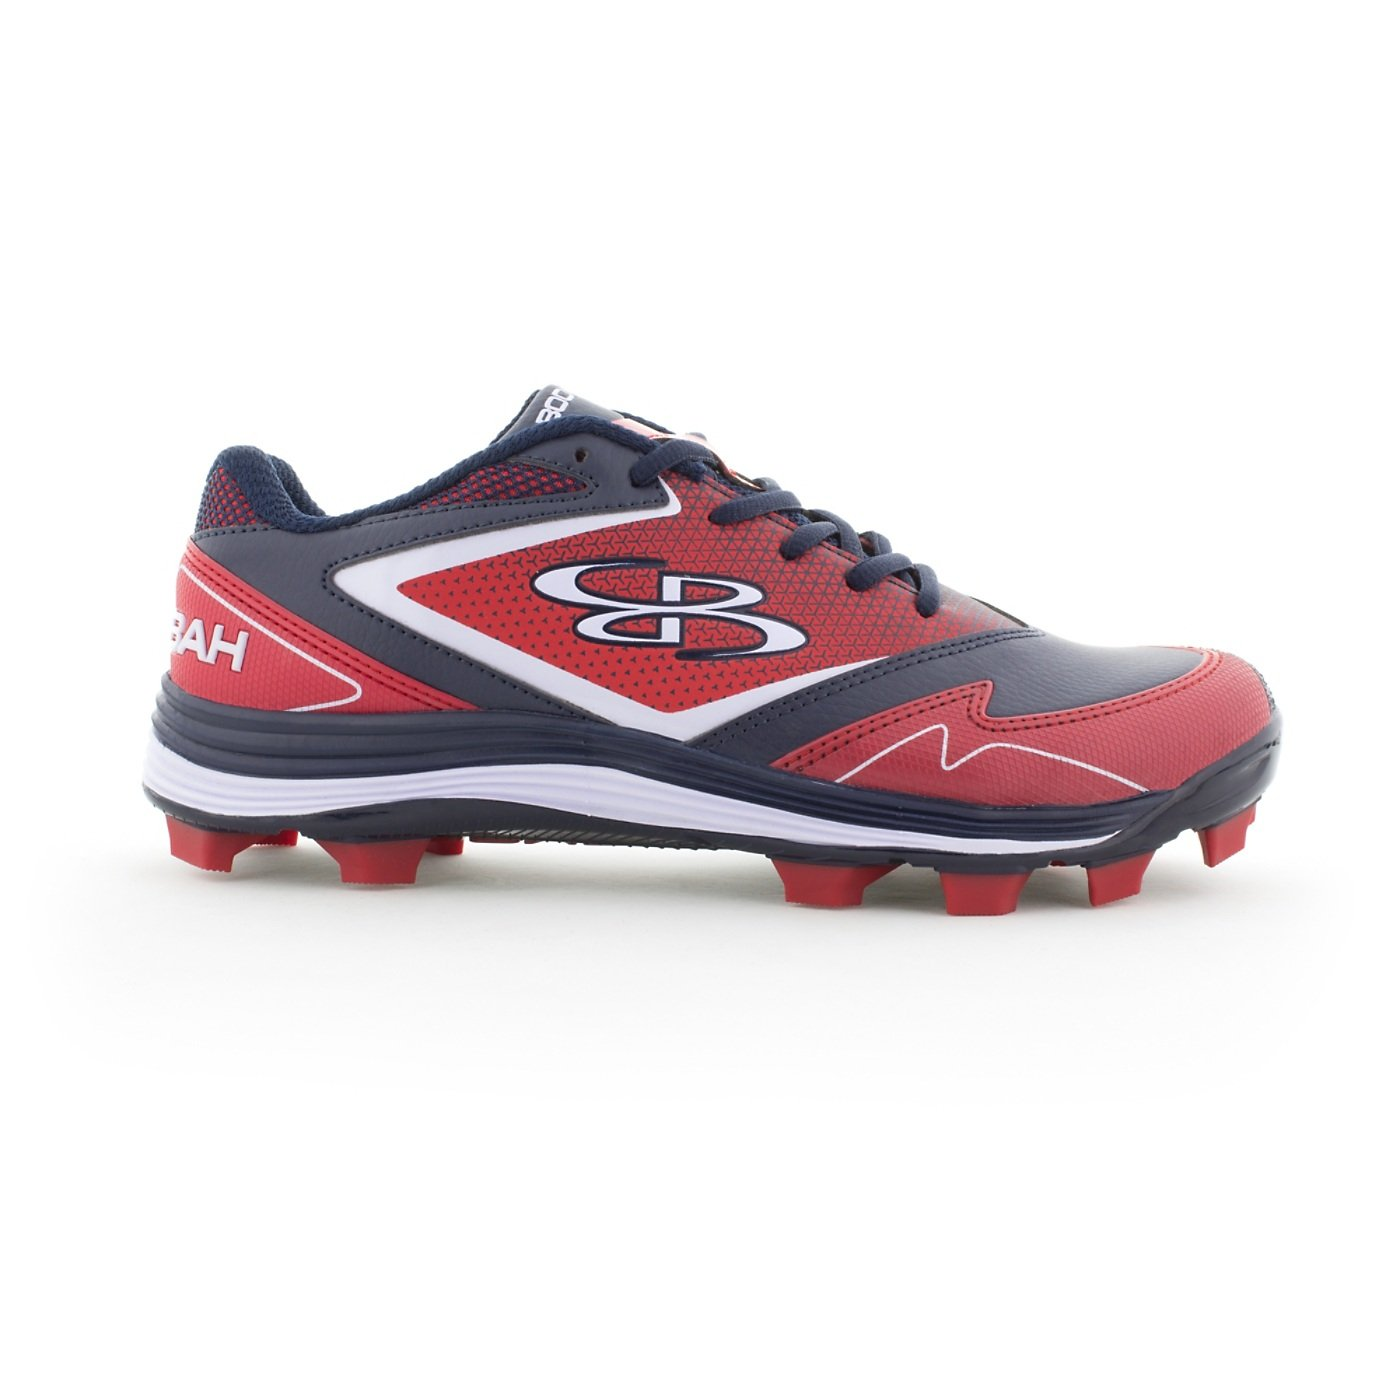 Boombah Women's A-Game Molded Cleats - 15 Color Options - Multiple Sizes